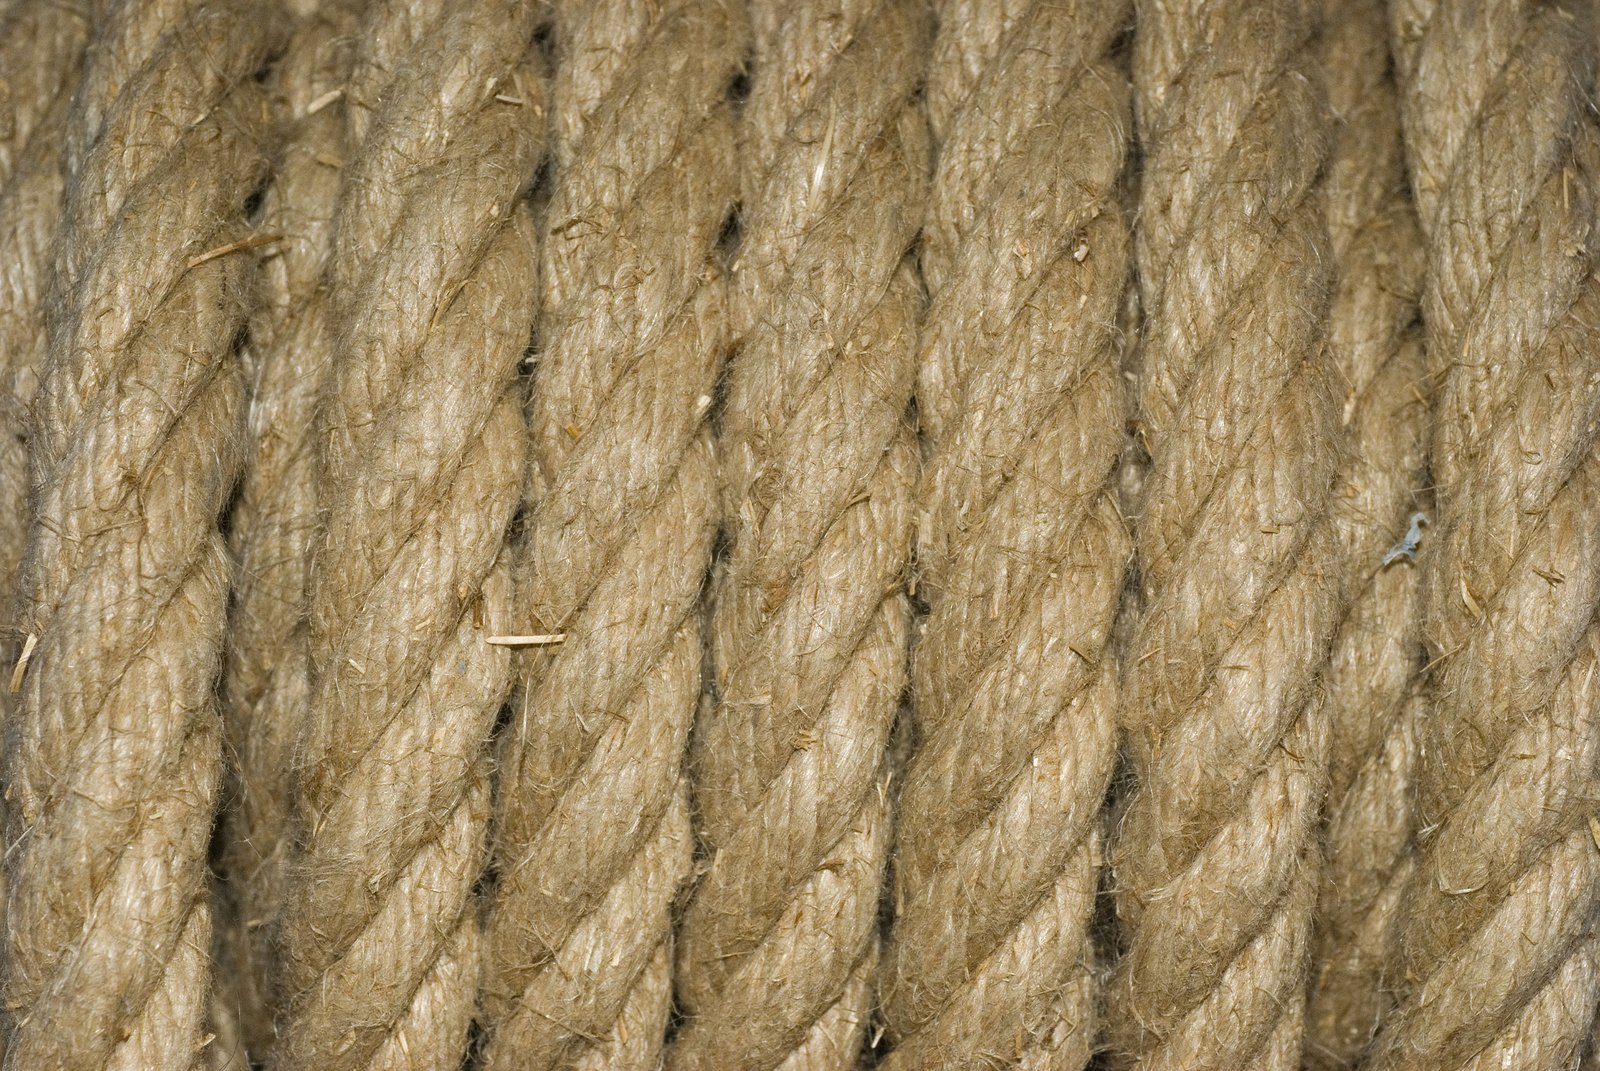 Line Texture Images : Free lines texture stock photo freeimages